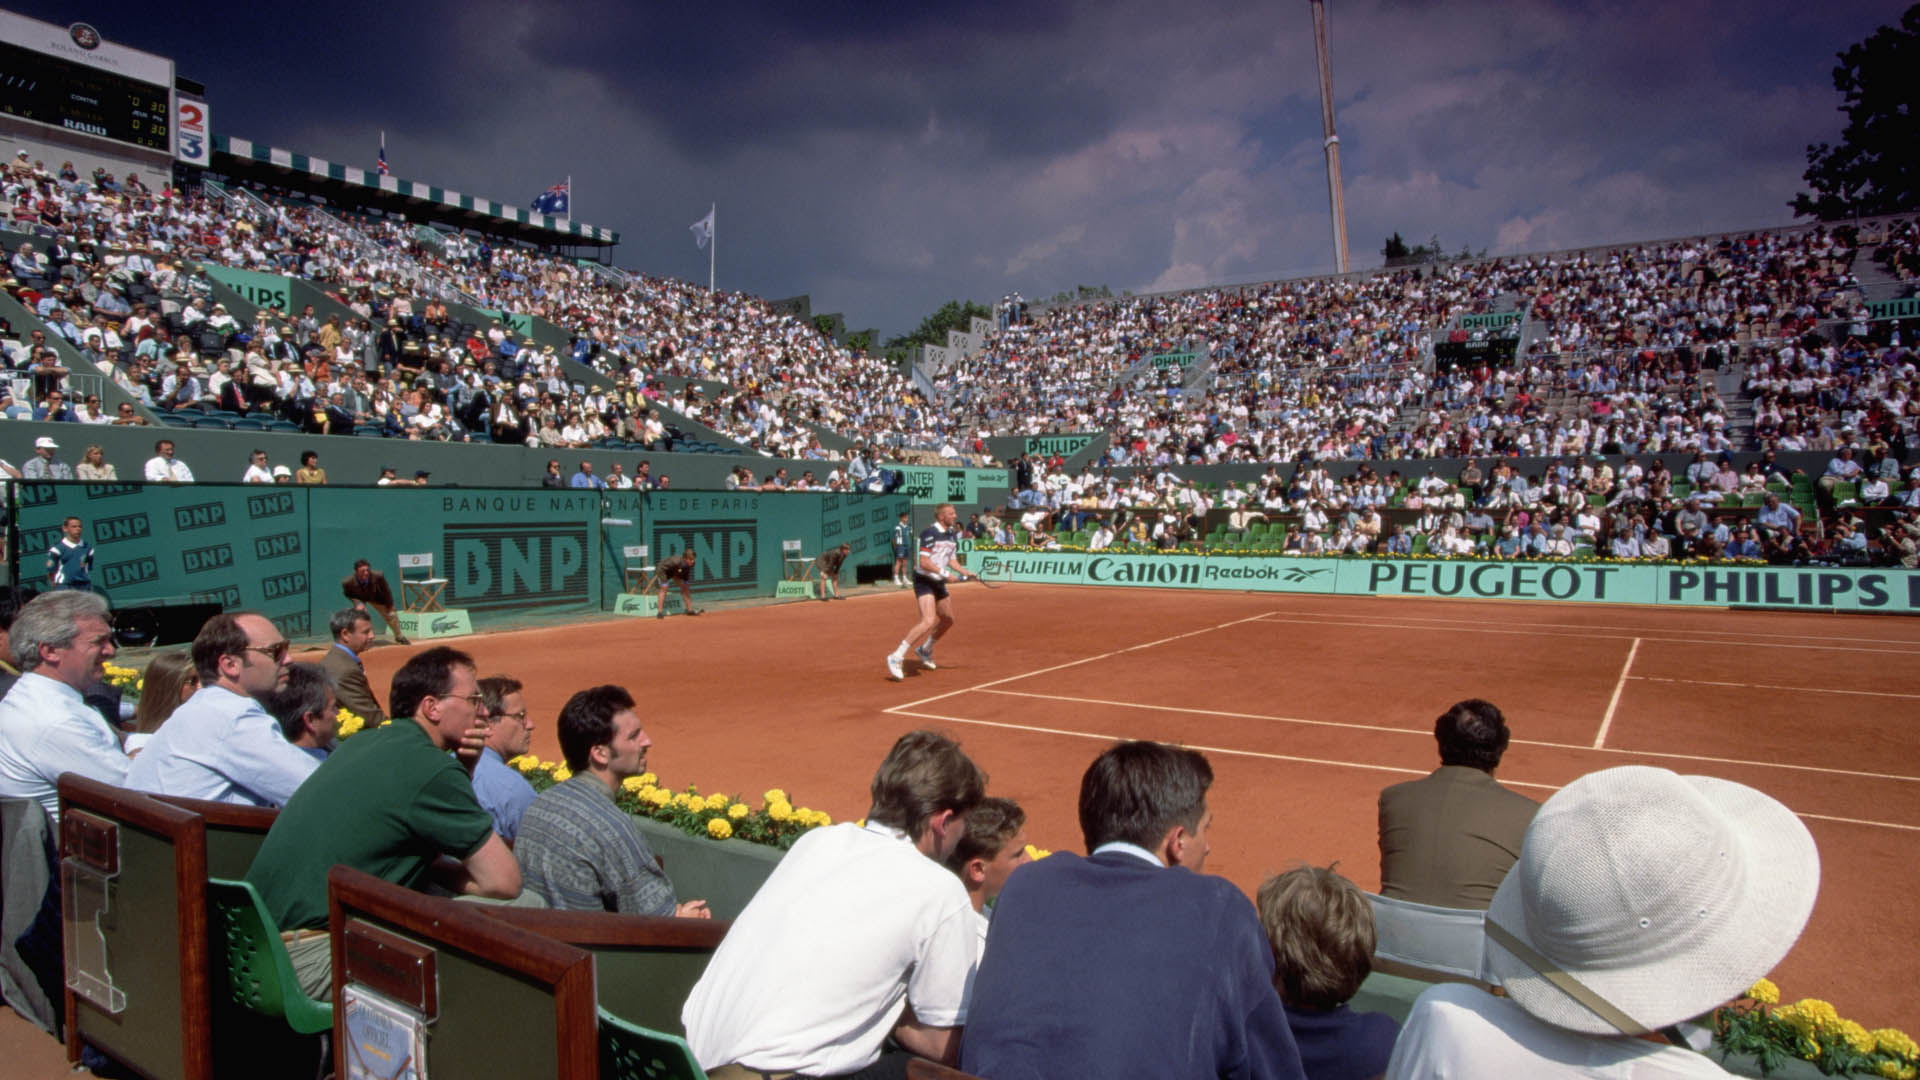 French Open 2021 live stream: how to watch the Roland-Garros tennis for free, Nadal vs Schwartzman